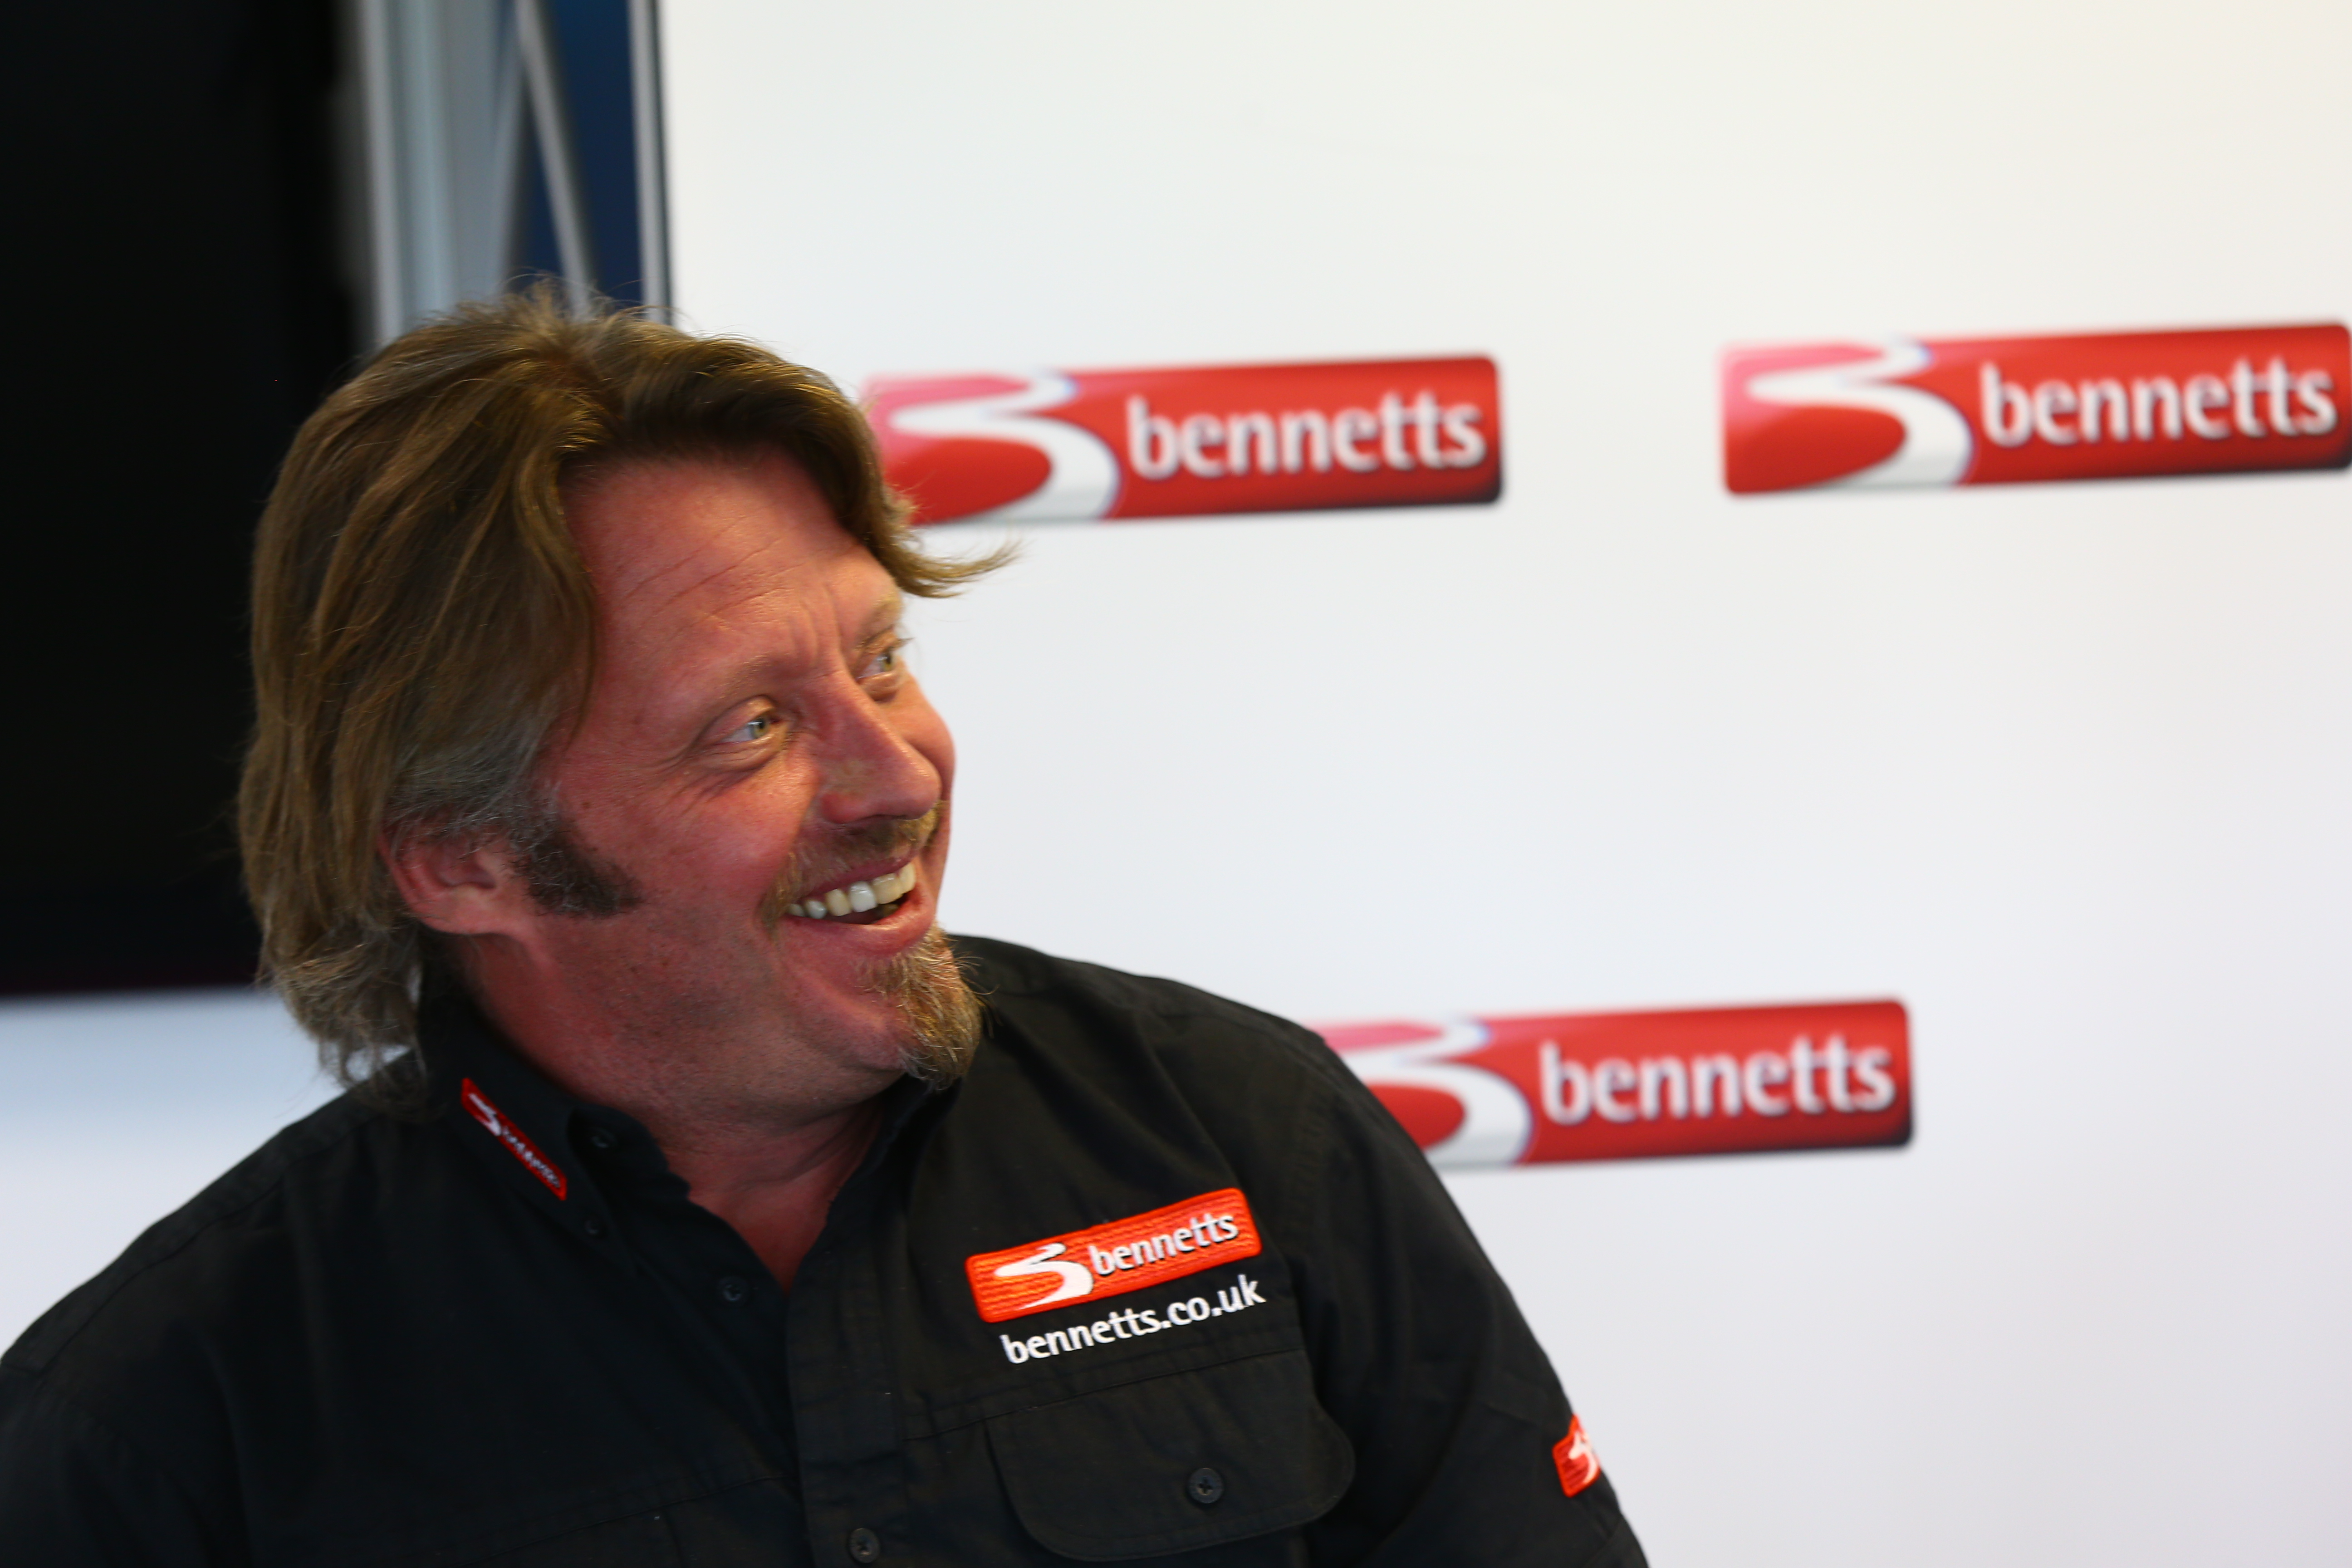 Charley Boorman on upcoming adventures, his love for motorcycling and his favourite kit